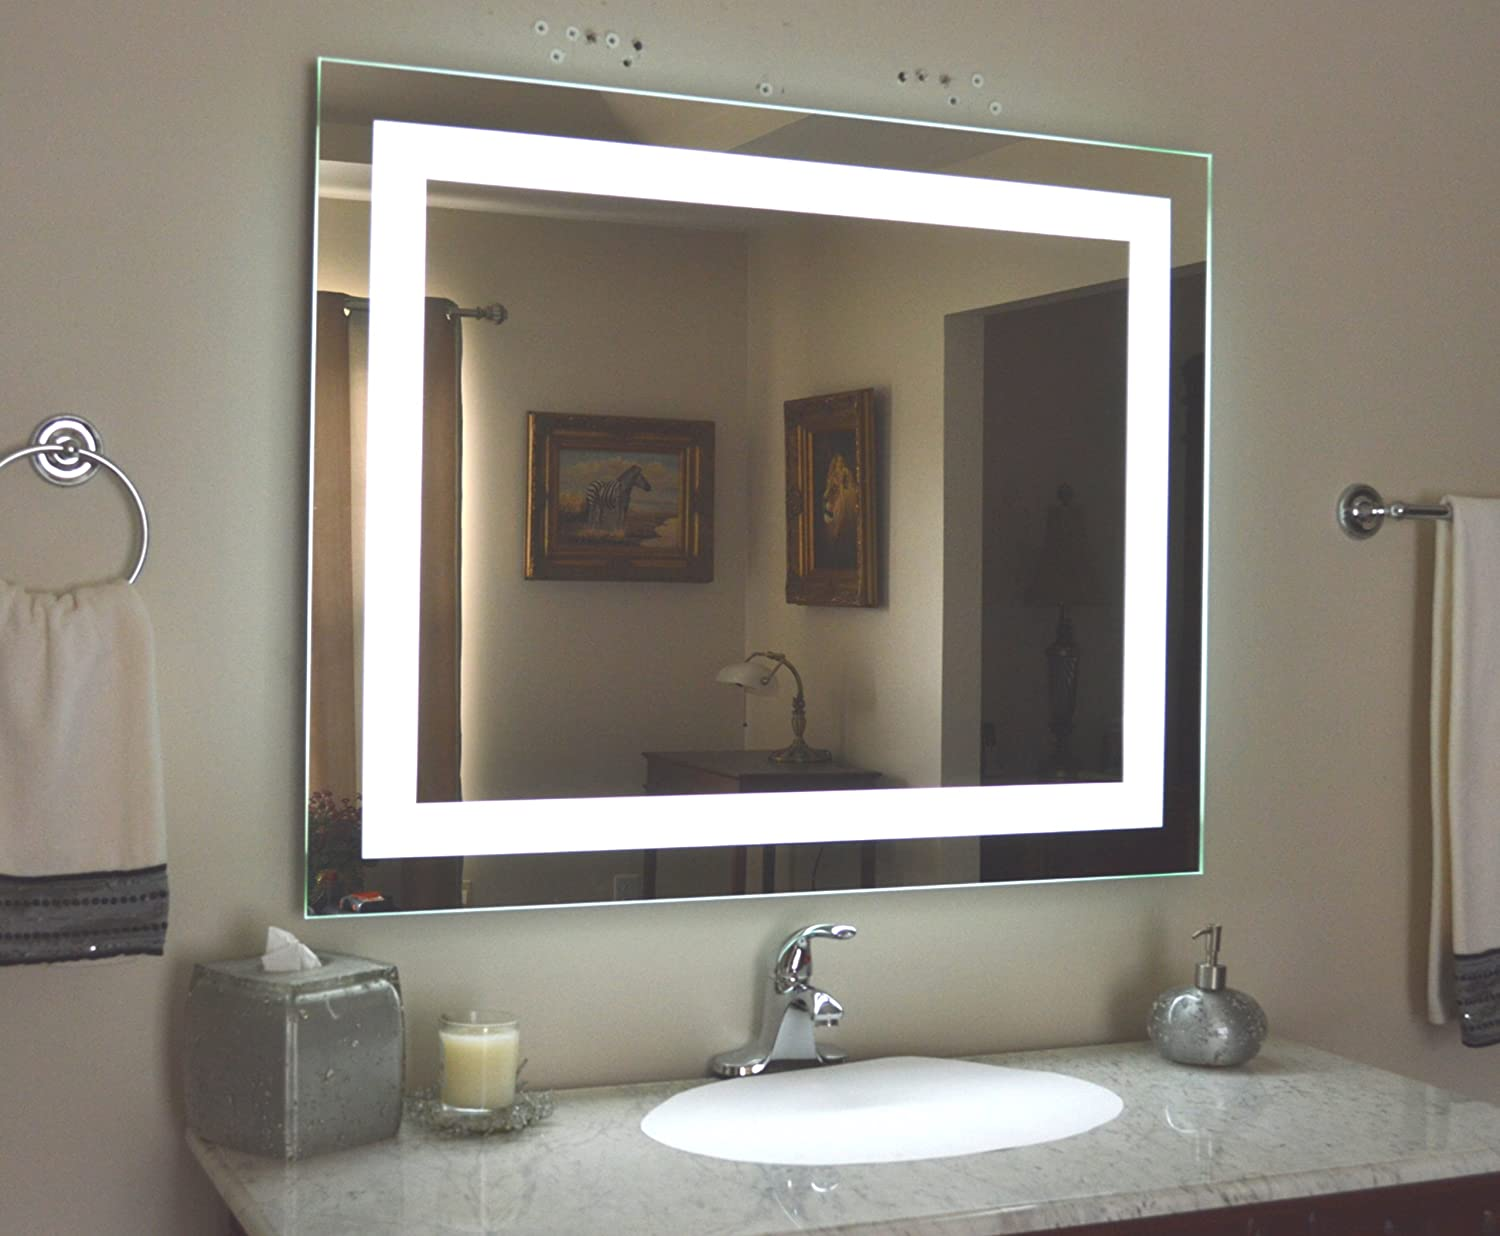 Amazon.com: Wall Mounted Lighted Vanity Mirror LED MAM84032 ...